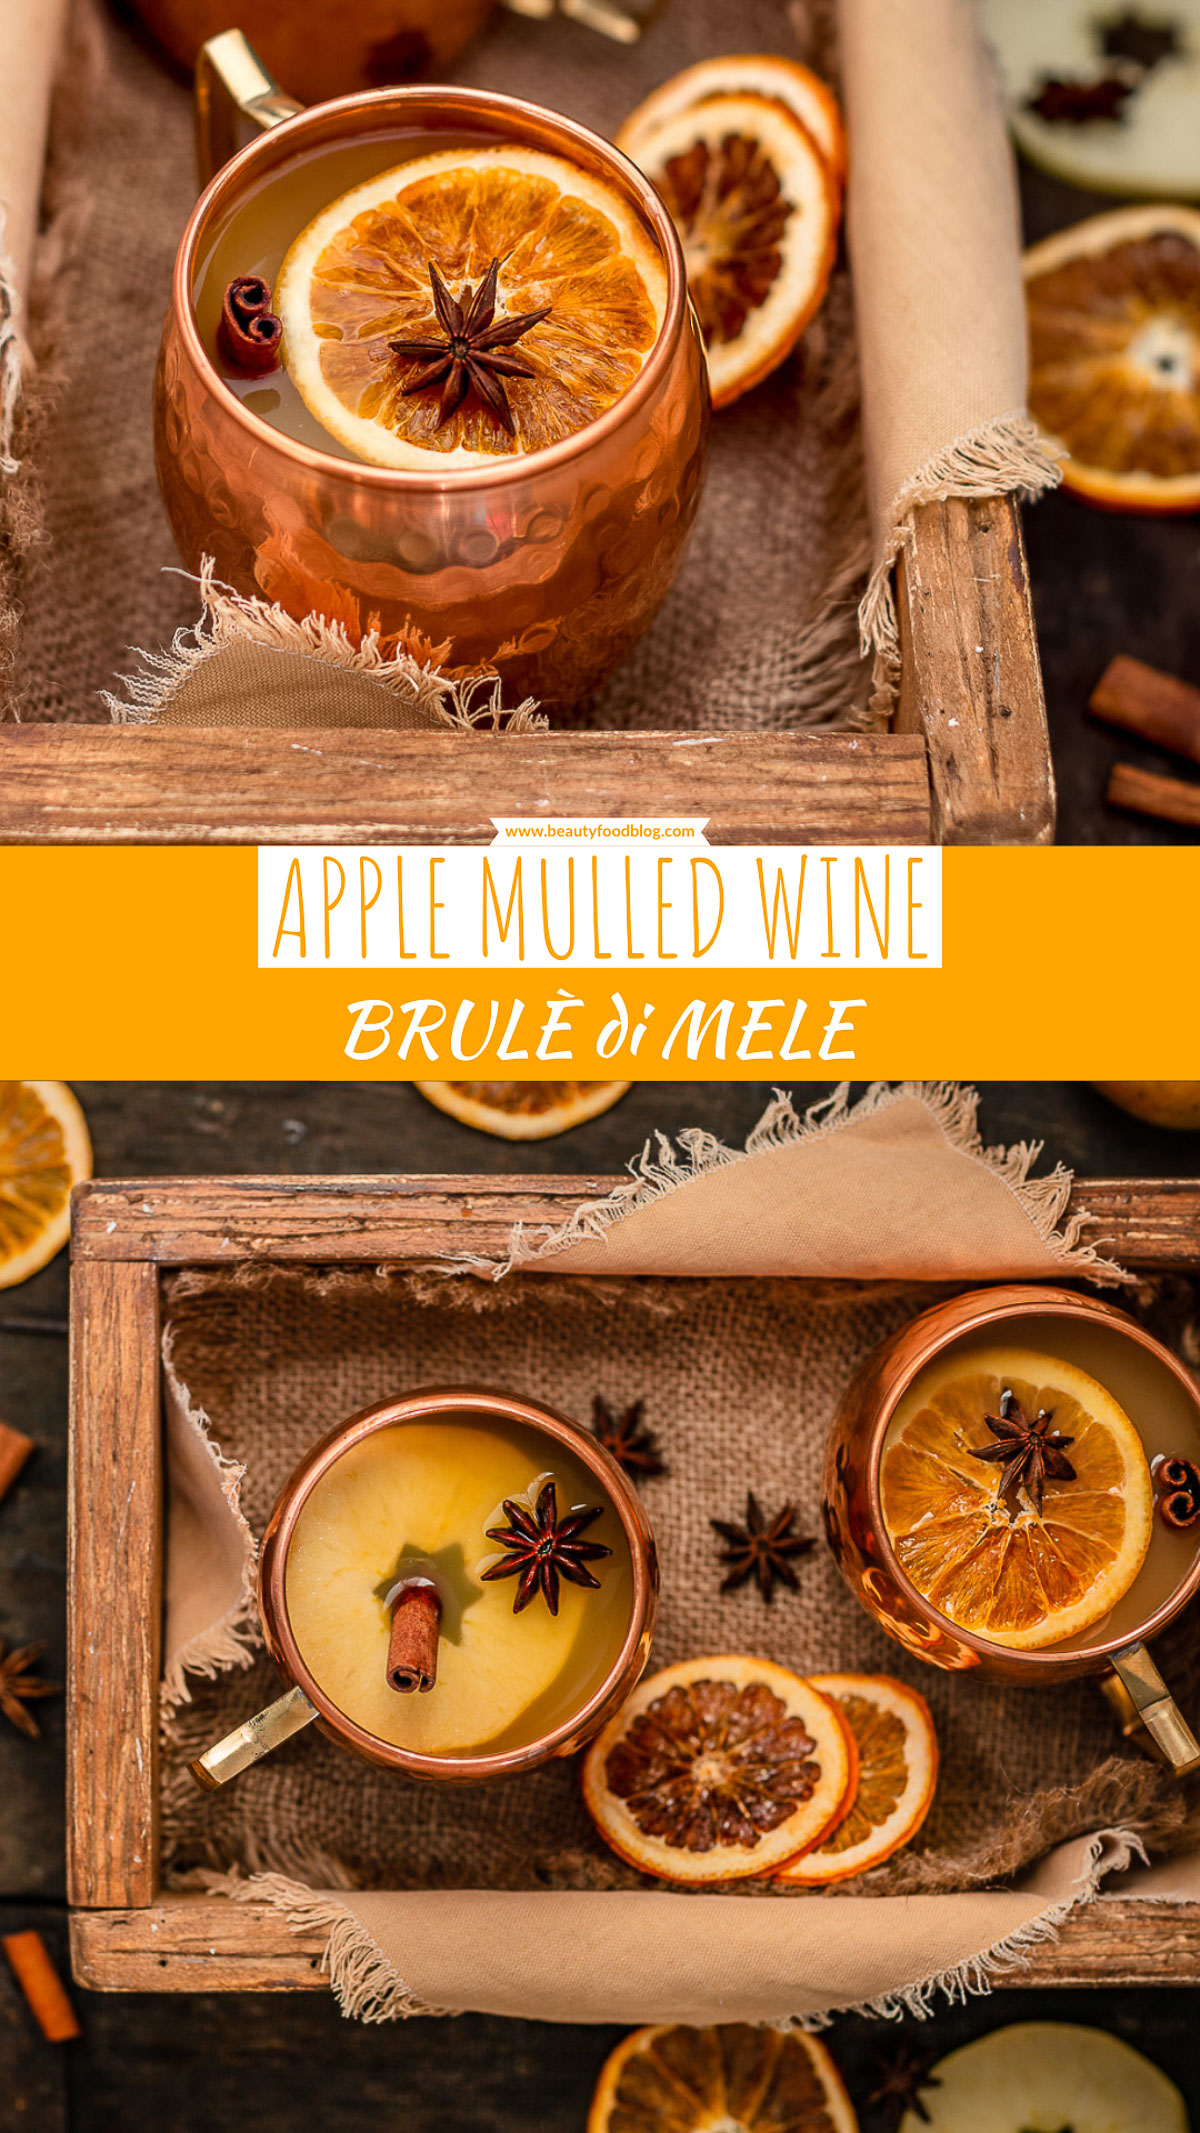 Healthy sugar-free APPLE MULLED WINE recipe Ricetta BRULÈ di MELE fatto in casa analcolico senza zucchero Apfelglühwein #Christmas #apple #Natale #mulledwine